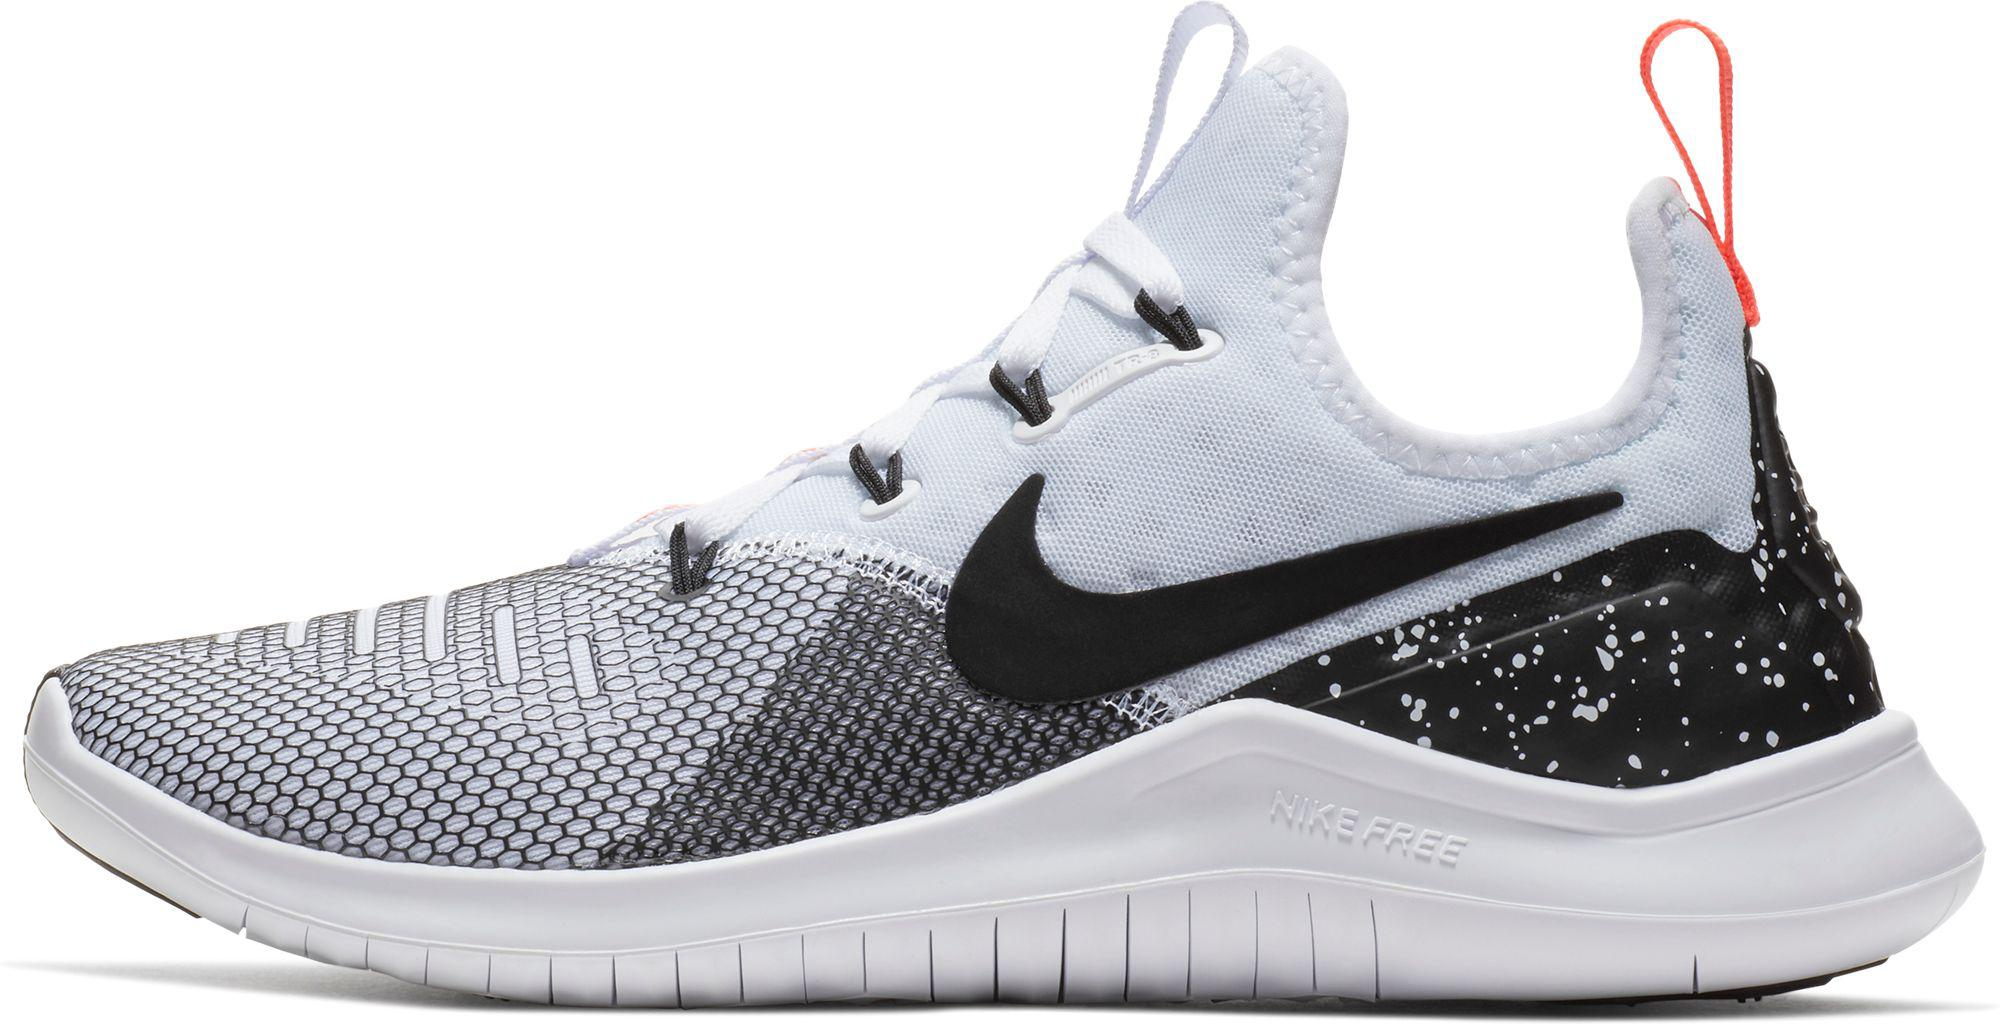 08b2a5163b4d Lyst - Nike Free Tr 8 Training Shoes in White